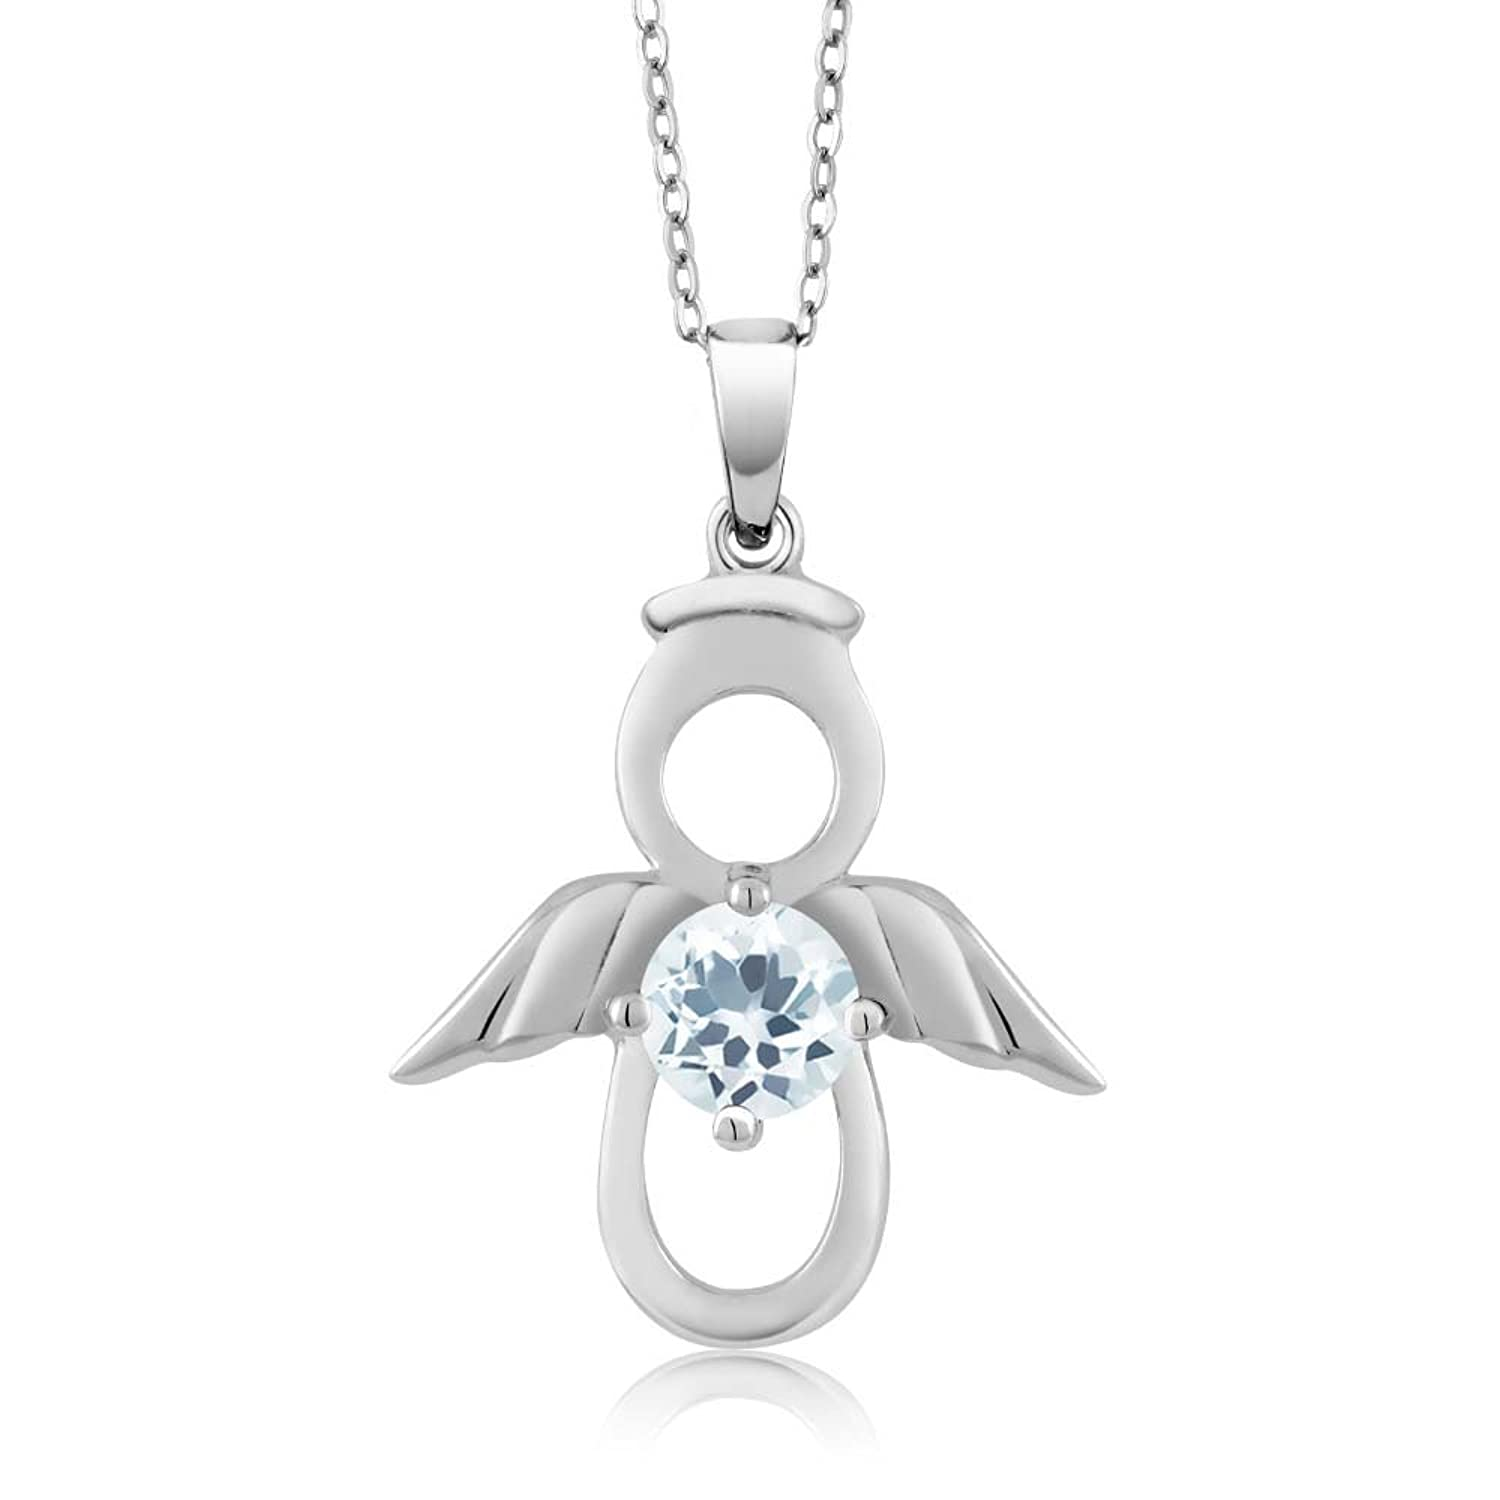 Sky Blue Aquamarine Angel Pendant Set in 925 Sterling Silver Gemstone Birthstone with 18 Inch Silver Chain (0.40 cttw)